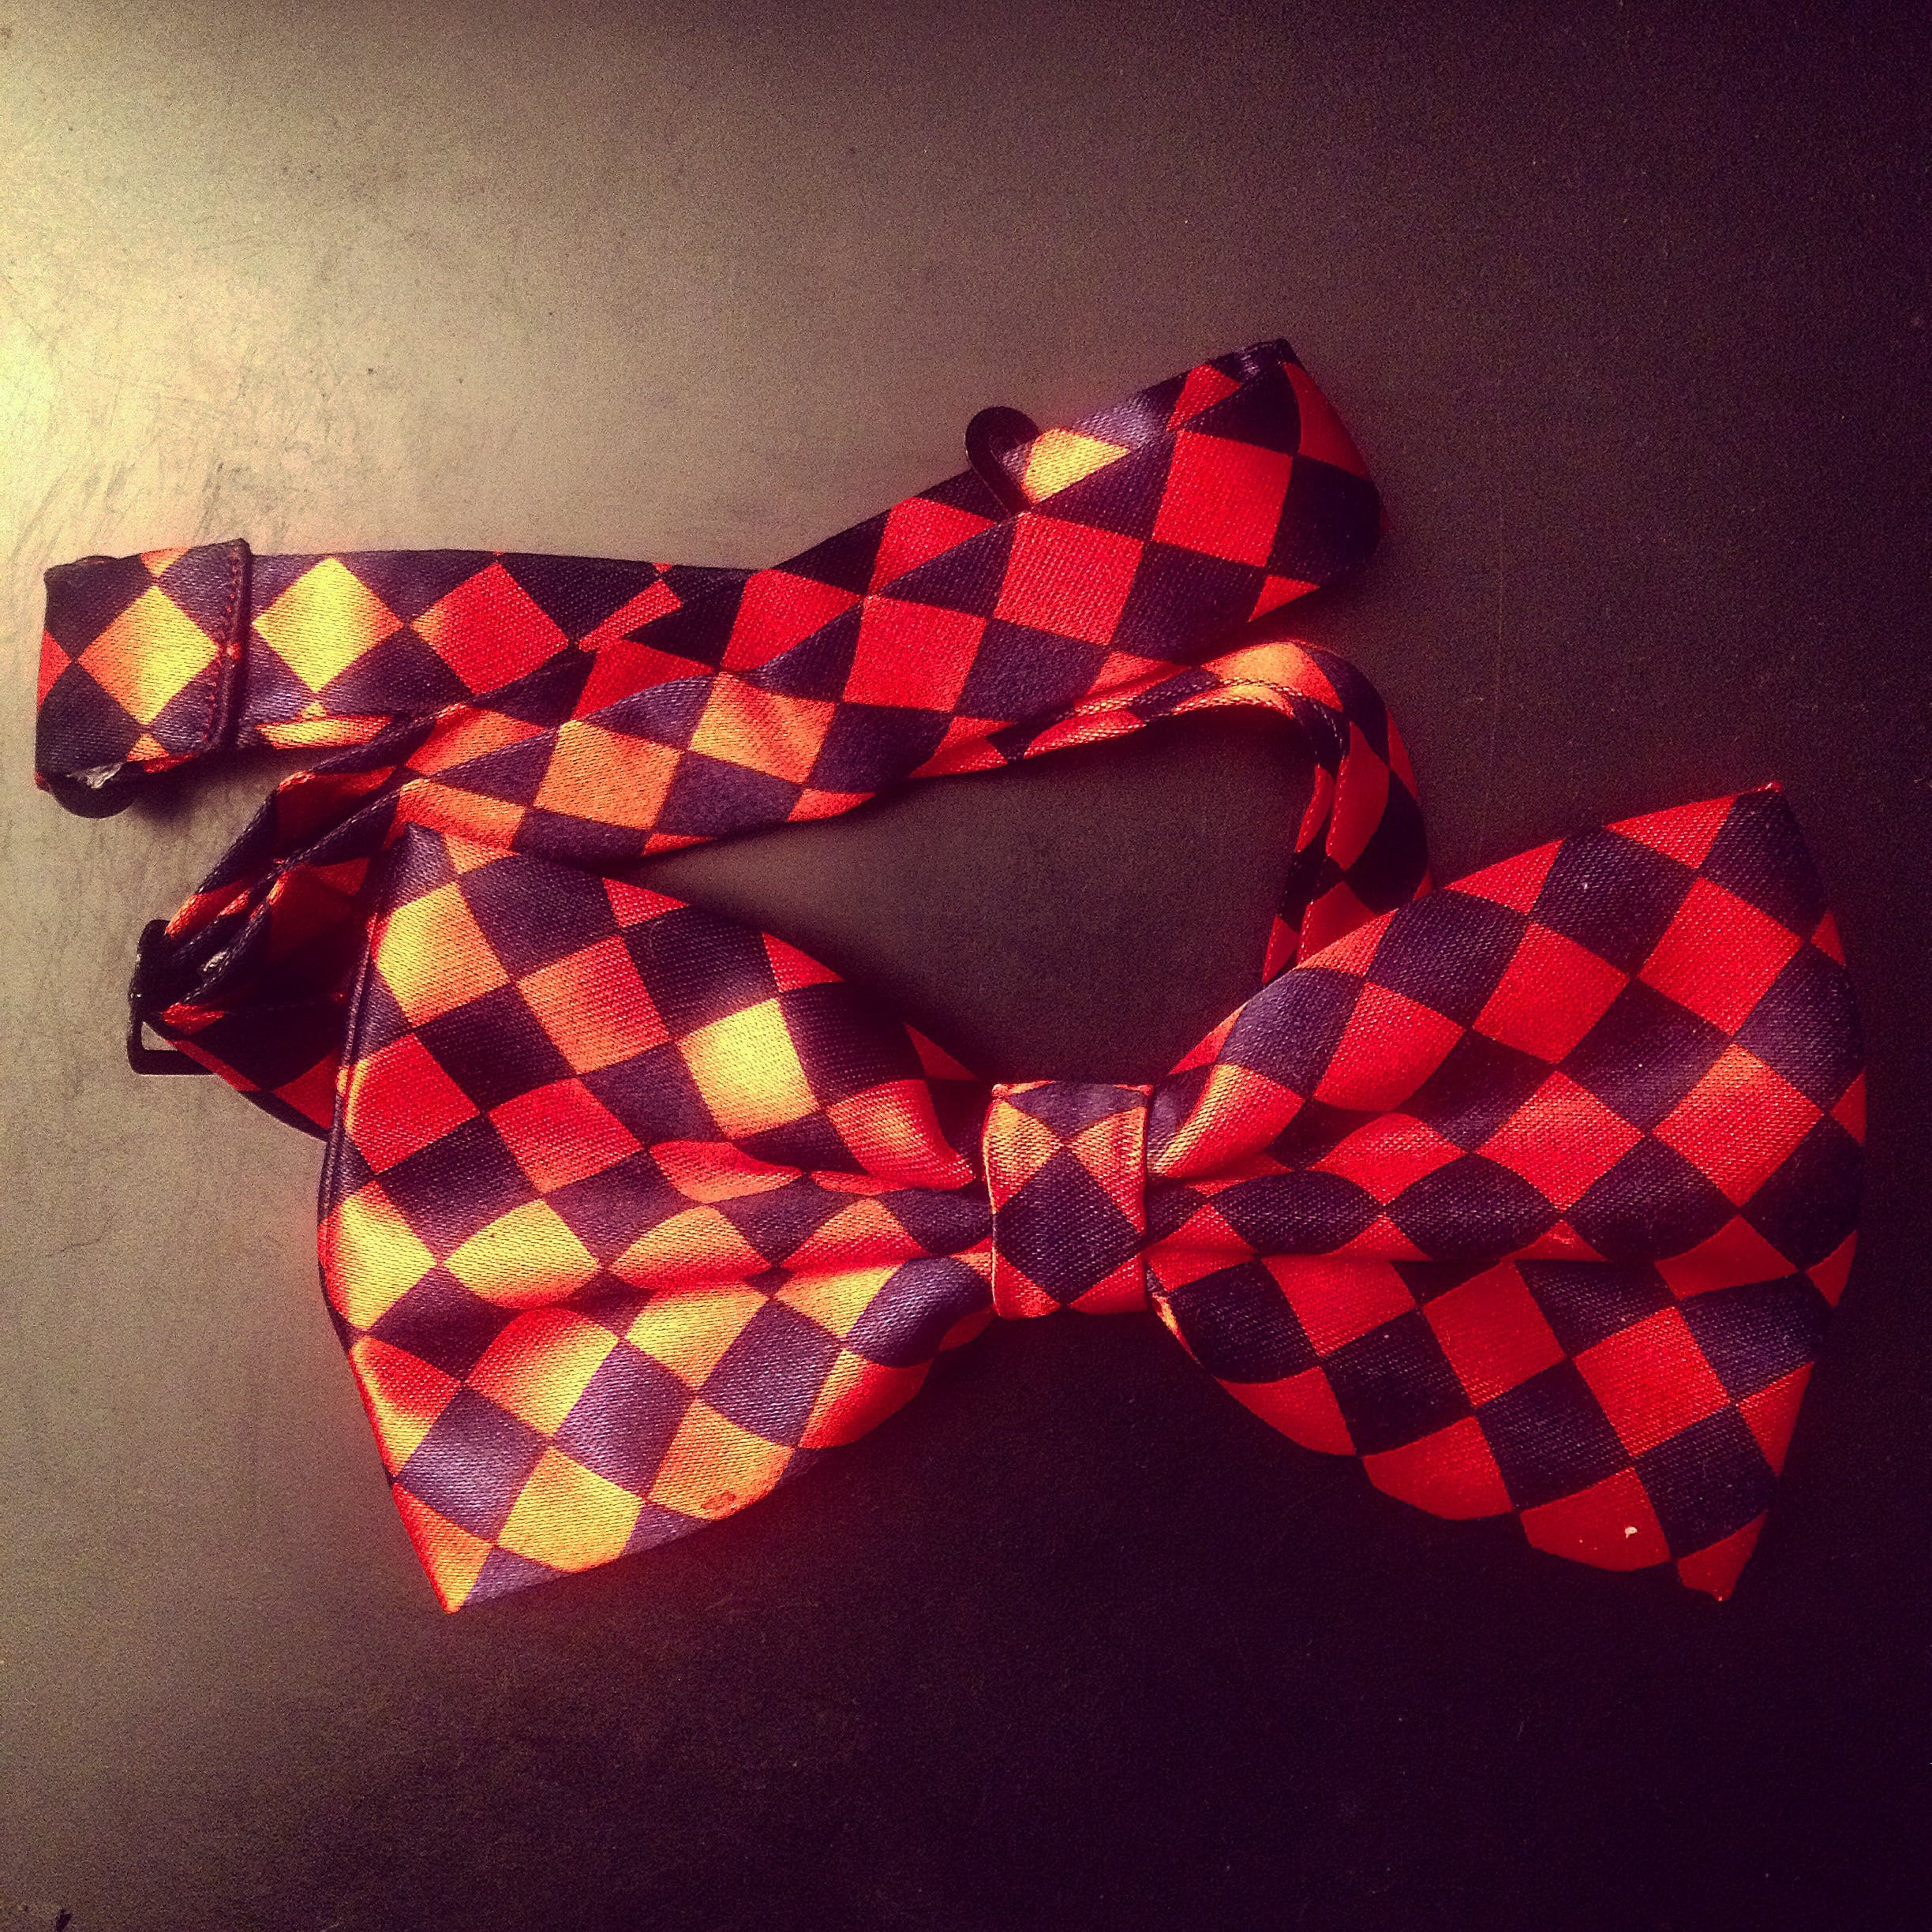 Red and Black Checkered Bow on Black Surface